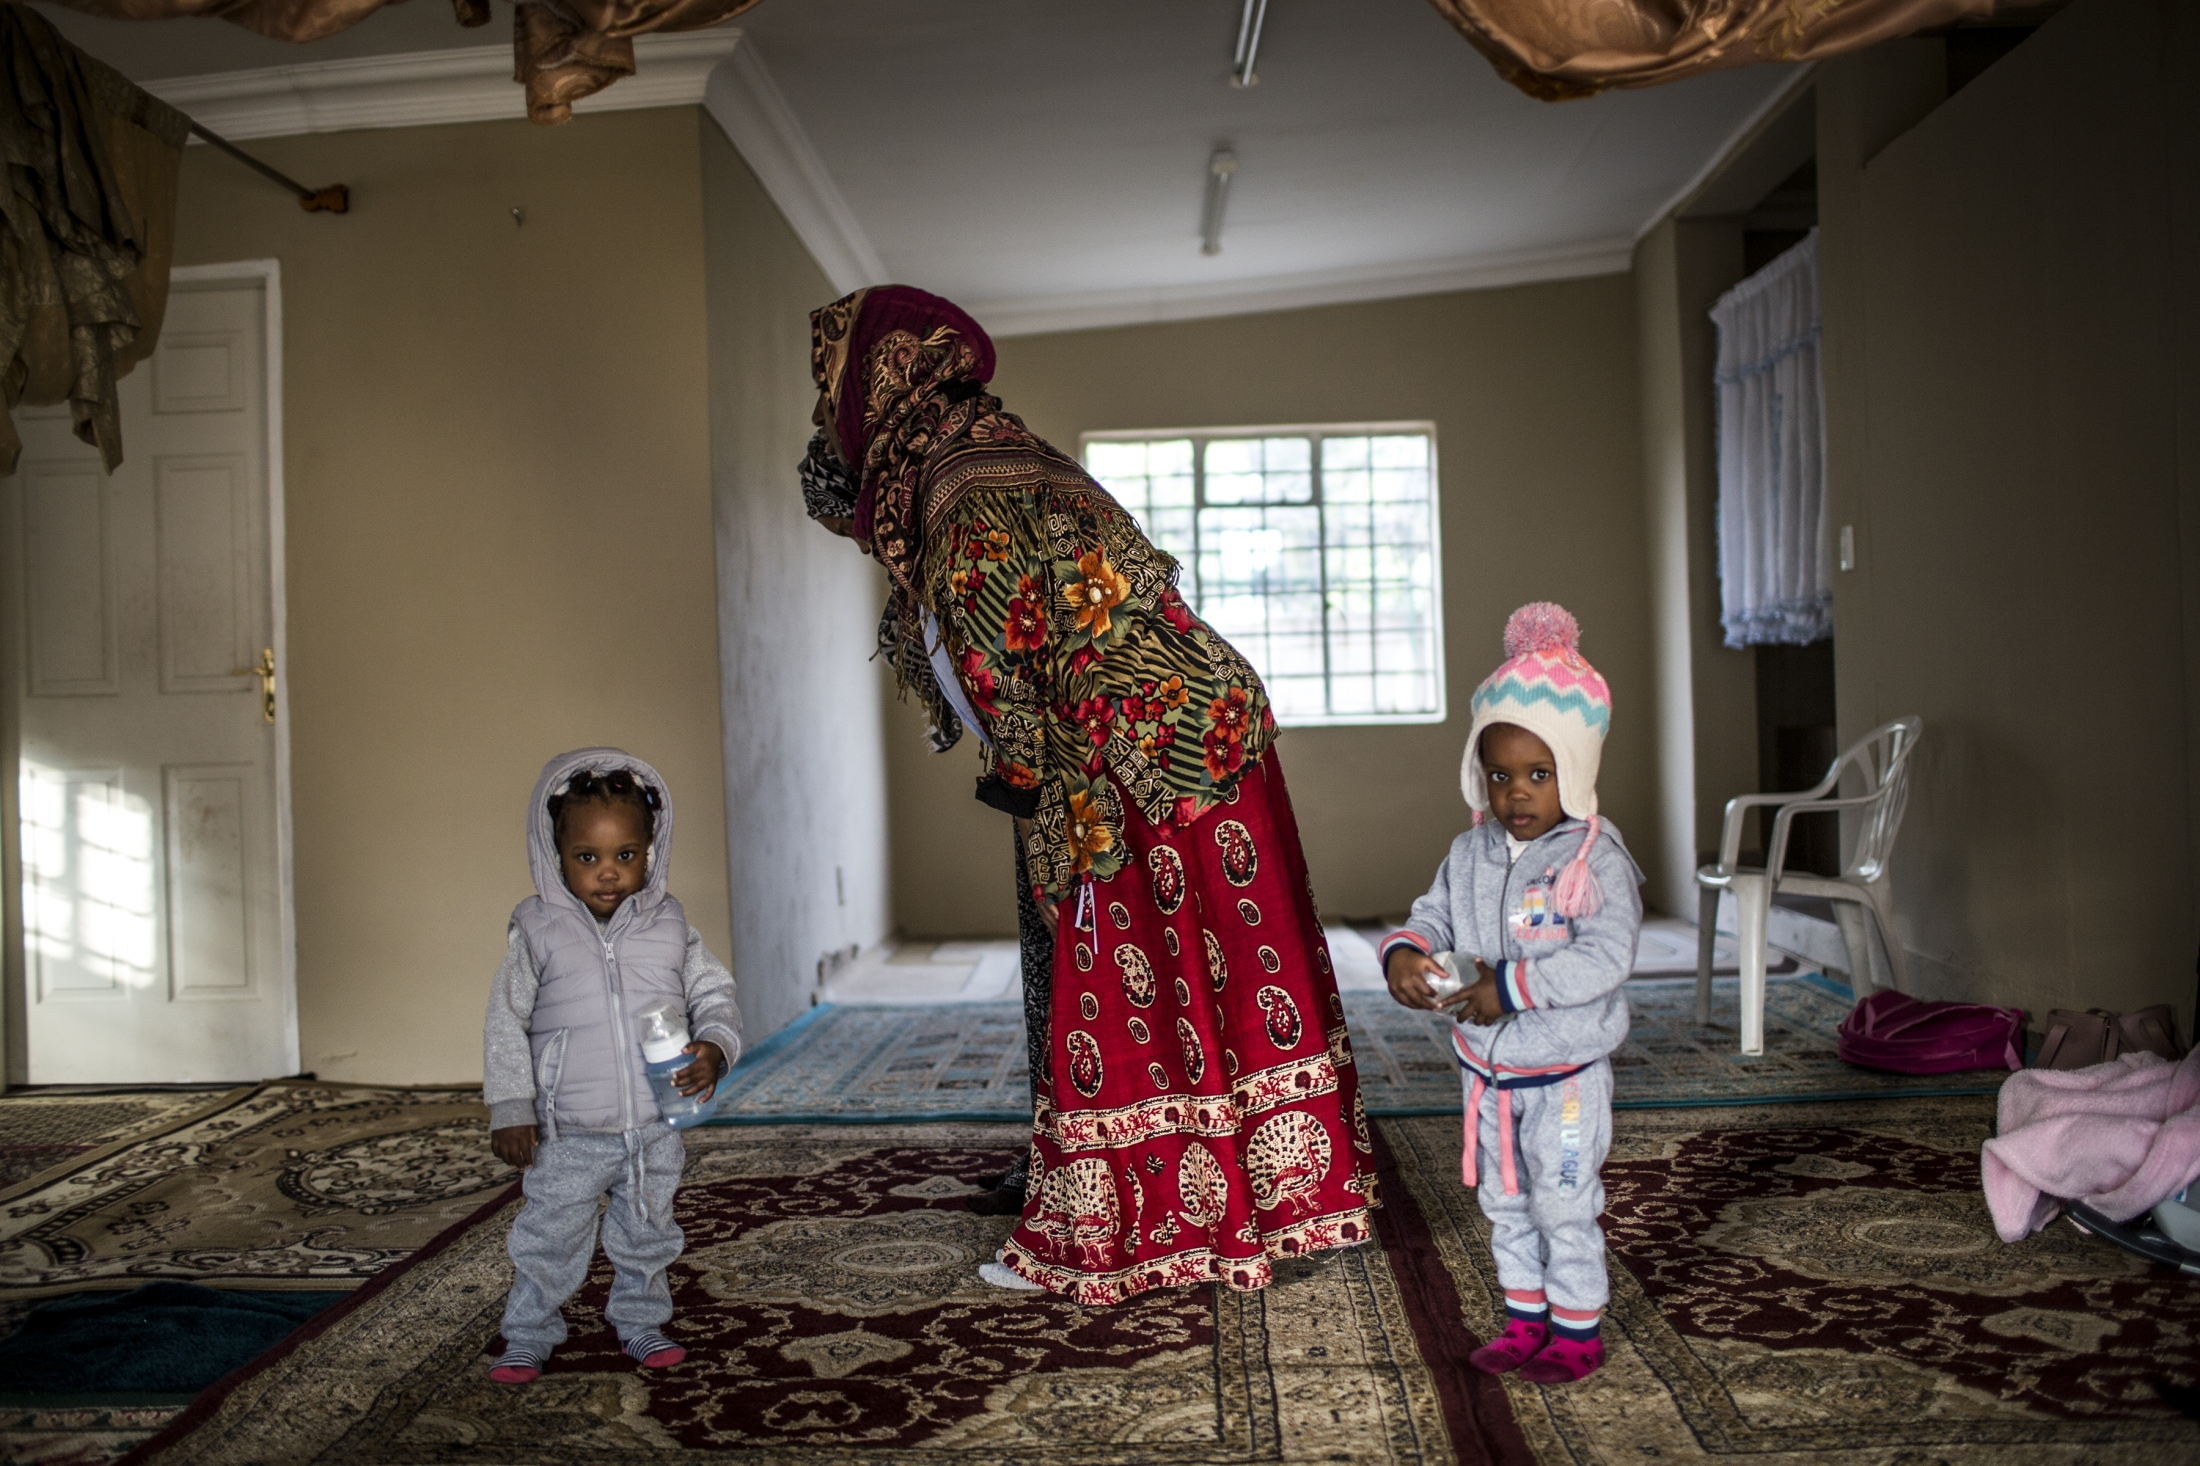 Khalila (R) and Raheema (L) look at the camera while their mother and a friend pray the Asr prayer at the Zawiya Tijani. Pretoria, South Africa. Tariqa Tijani, a line of Sufism traced back to Sheikh Ahmed Tijani in Algeria and Morocco now has followers all over the world. While some Tijani came to South Africa from Mauritanian and Ghana, 95% of the Tijani community in South Africa follow the line of Sheikh Hassan who came south africa in 2002 and united all the communities. The community in Tshwane meet regularly for the daily prayers as well as dhikr.